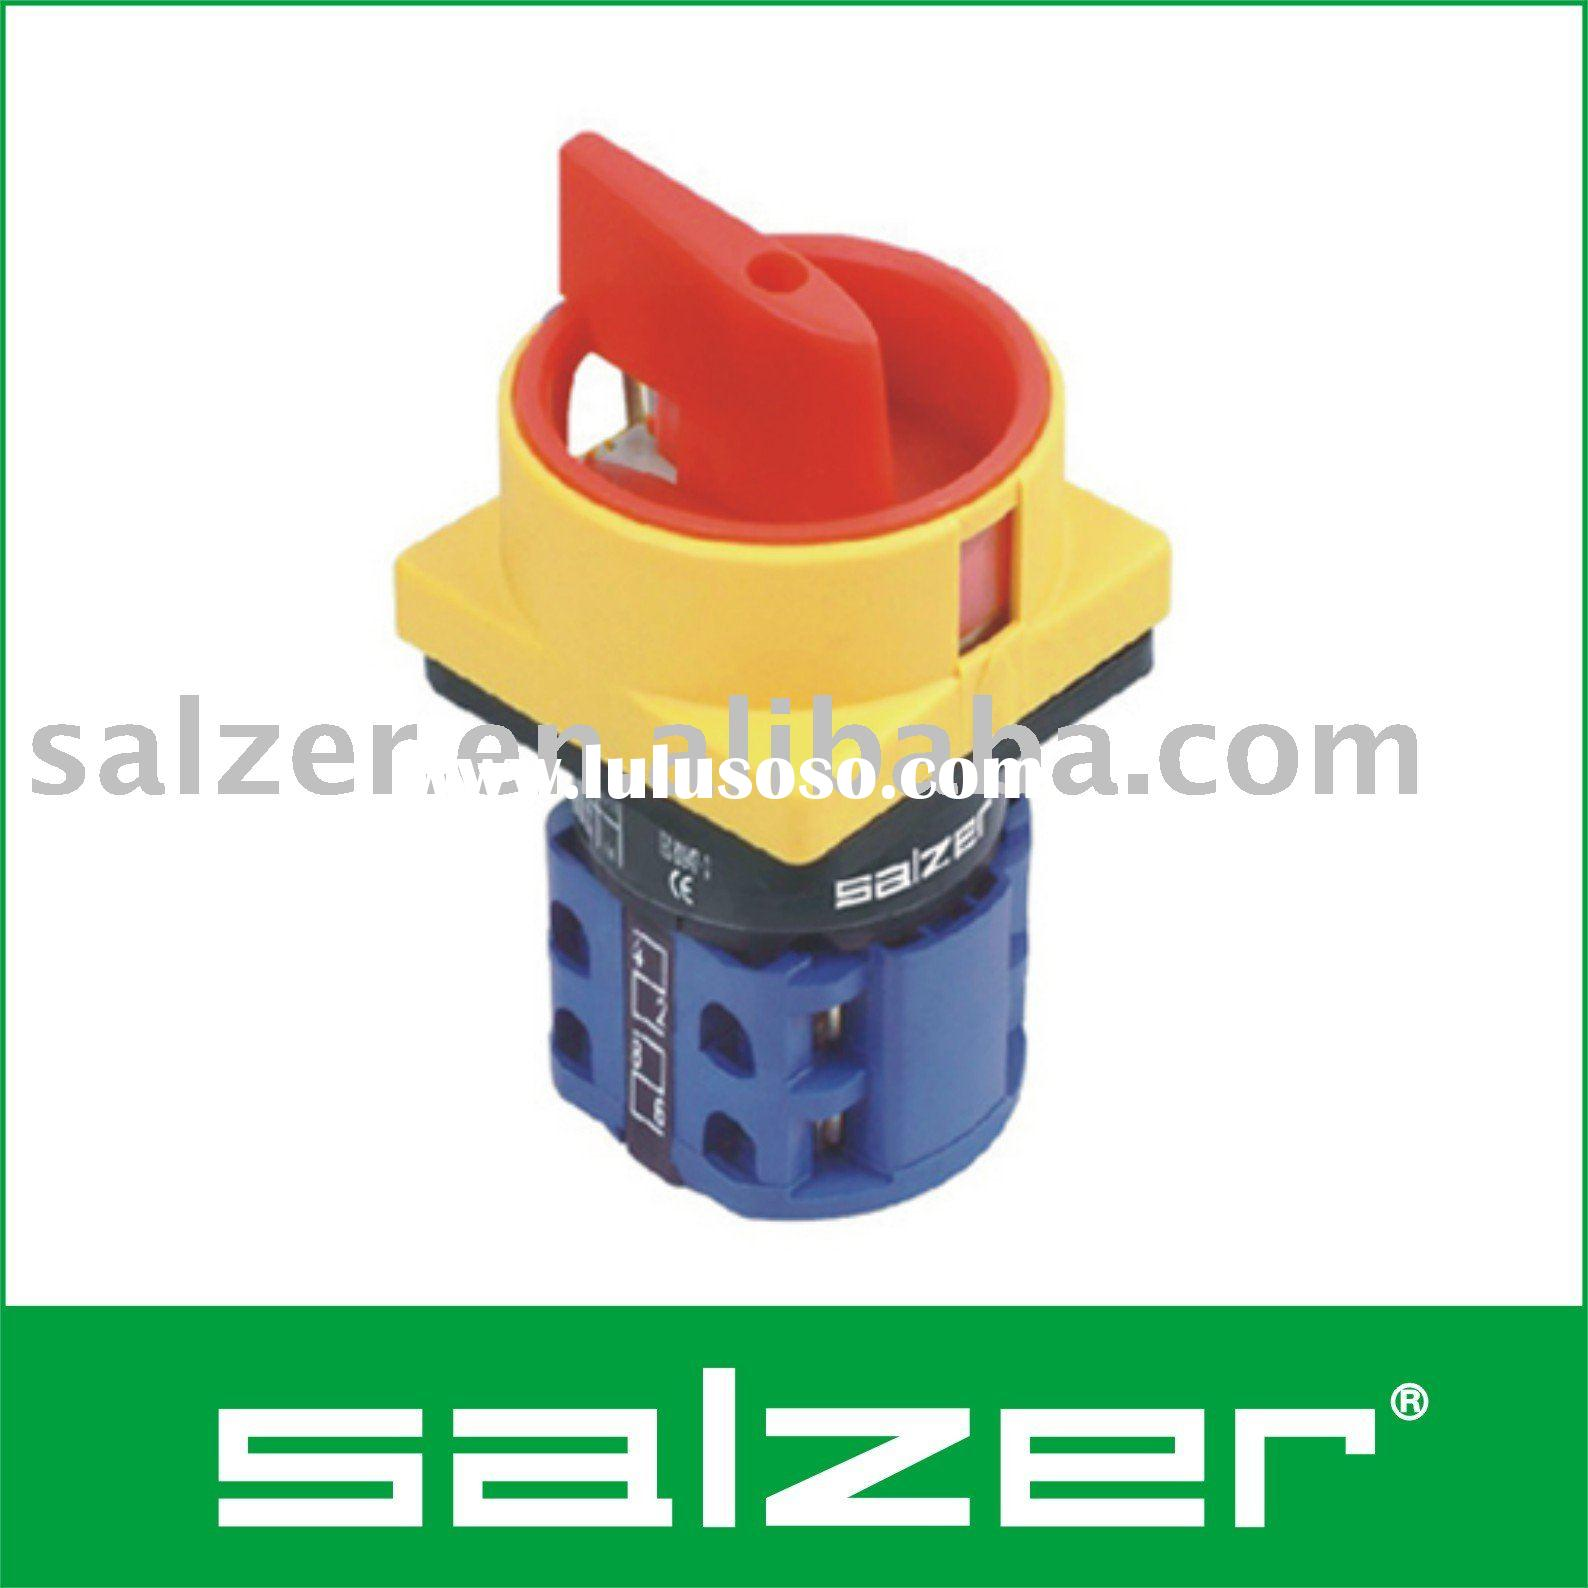 Boat Lift Drum Switch Wiring Diagram in addition 12 Volt 20   Circuit Breaker as well Rotary Encoder Wiring Diagram as well 4 Position Rotary Selector Switch Wiring Diagram furthermore Mayfair Bilge Pump Wiring Diagram. on salzer rotary cam switch wiring diagram